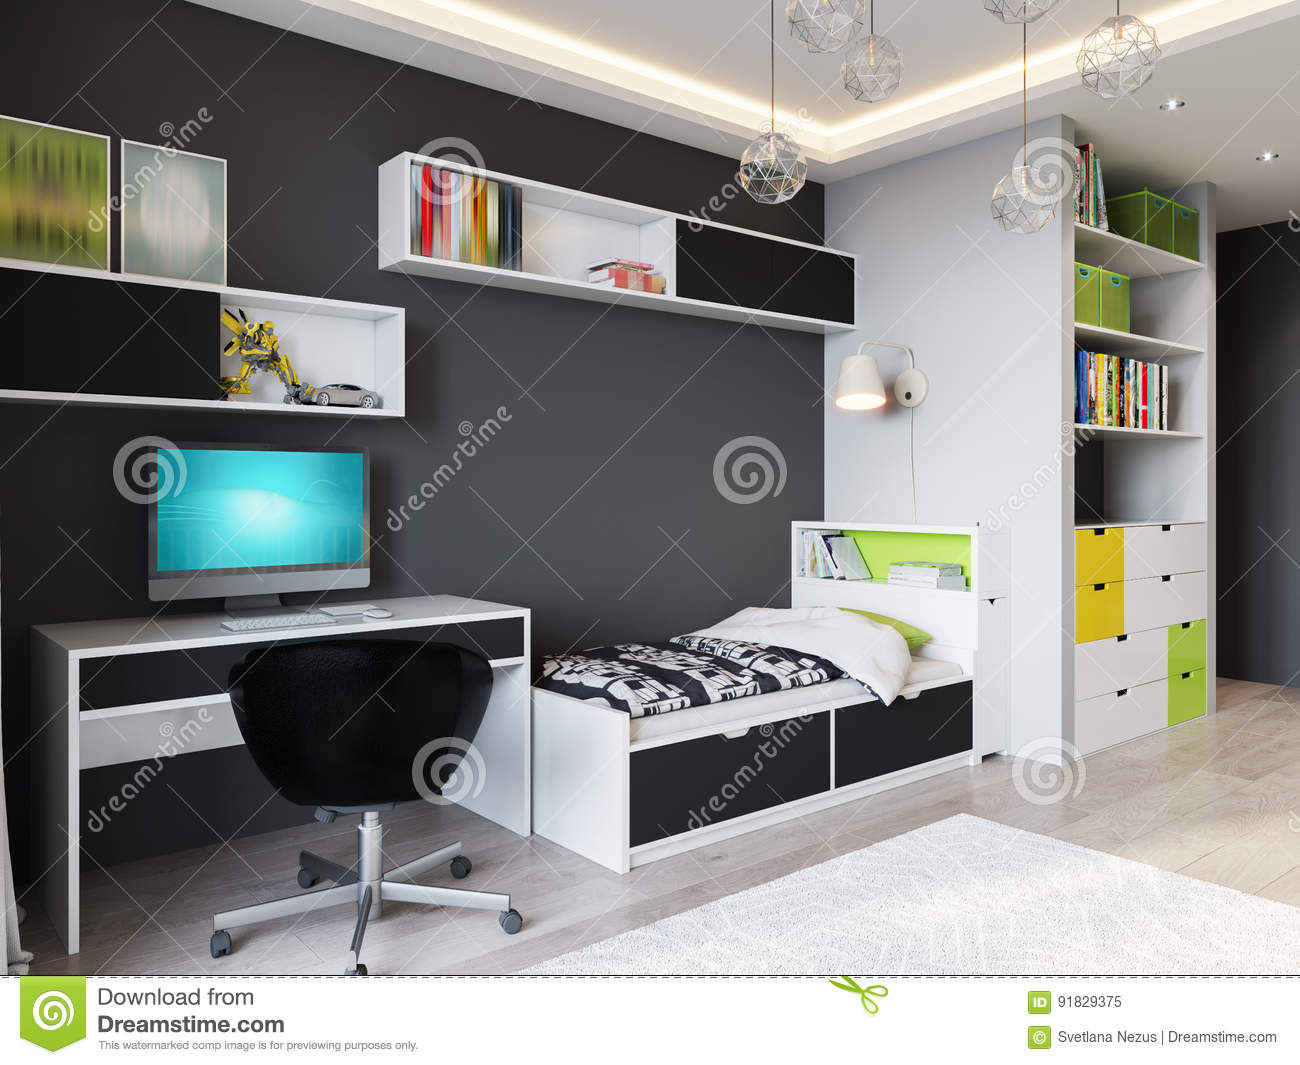 Accents cartoons illustrations vector stock images 1384 pictures to download from - Outstanding one room apartment decoration in bright white design ...